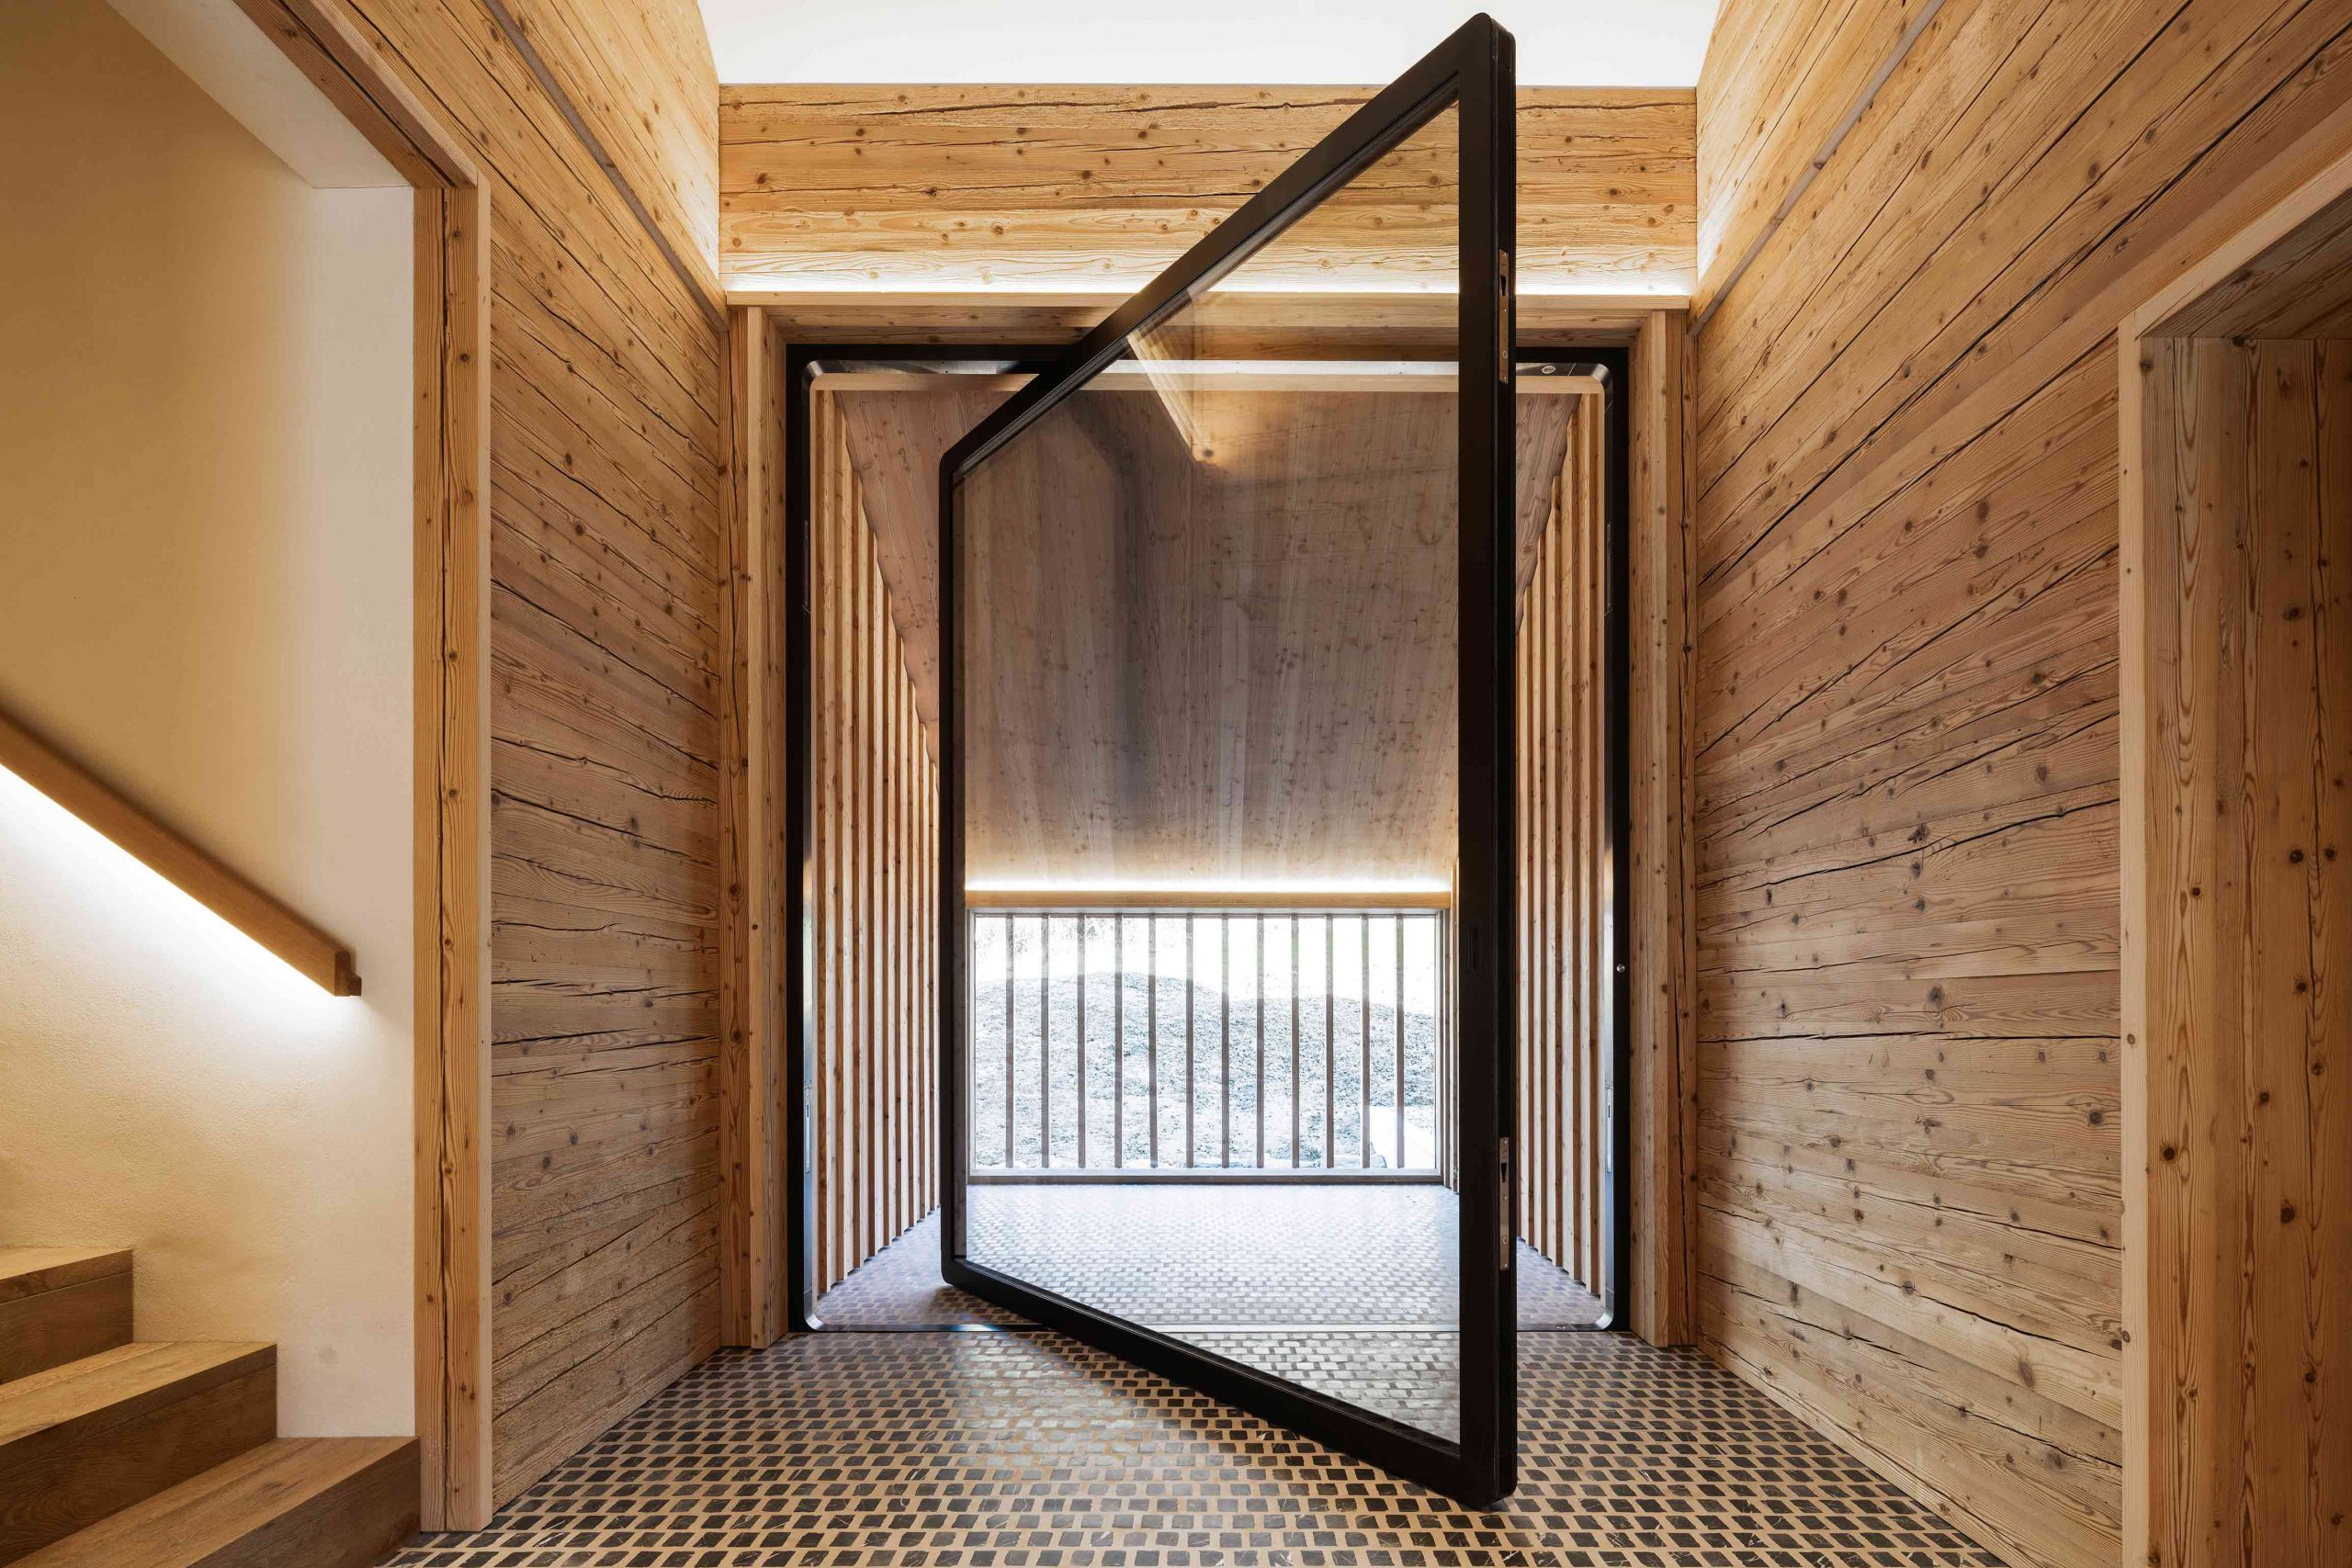 2674-balcony-pivot-door-designed-by-air-lux-1-scaled.jpg